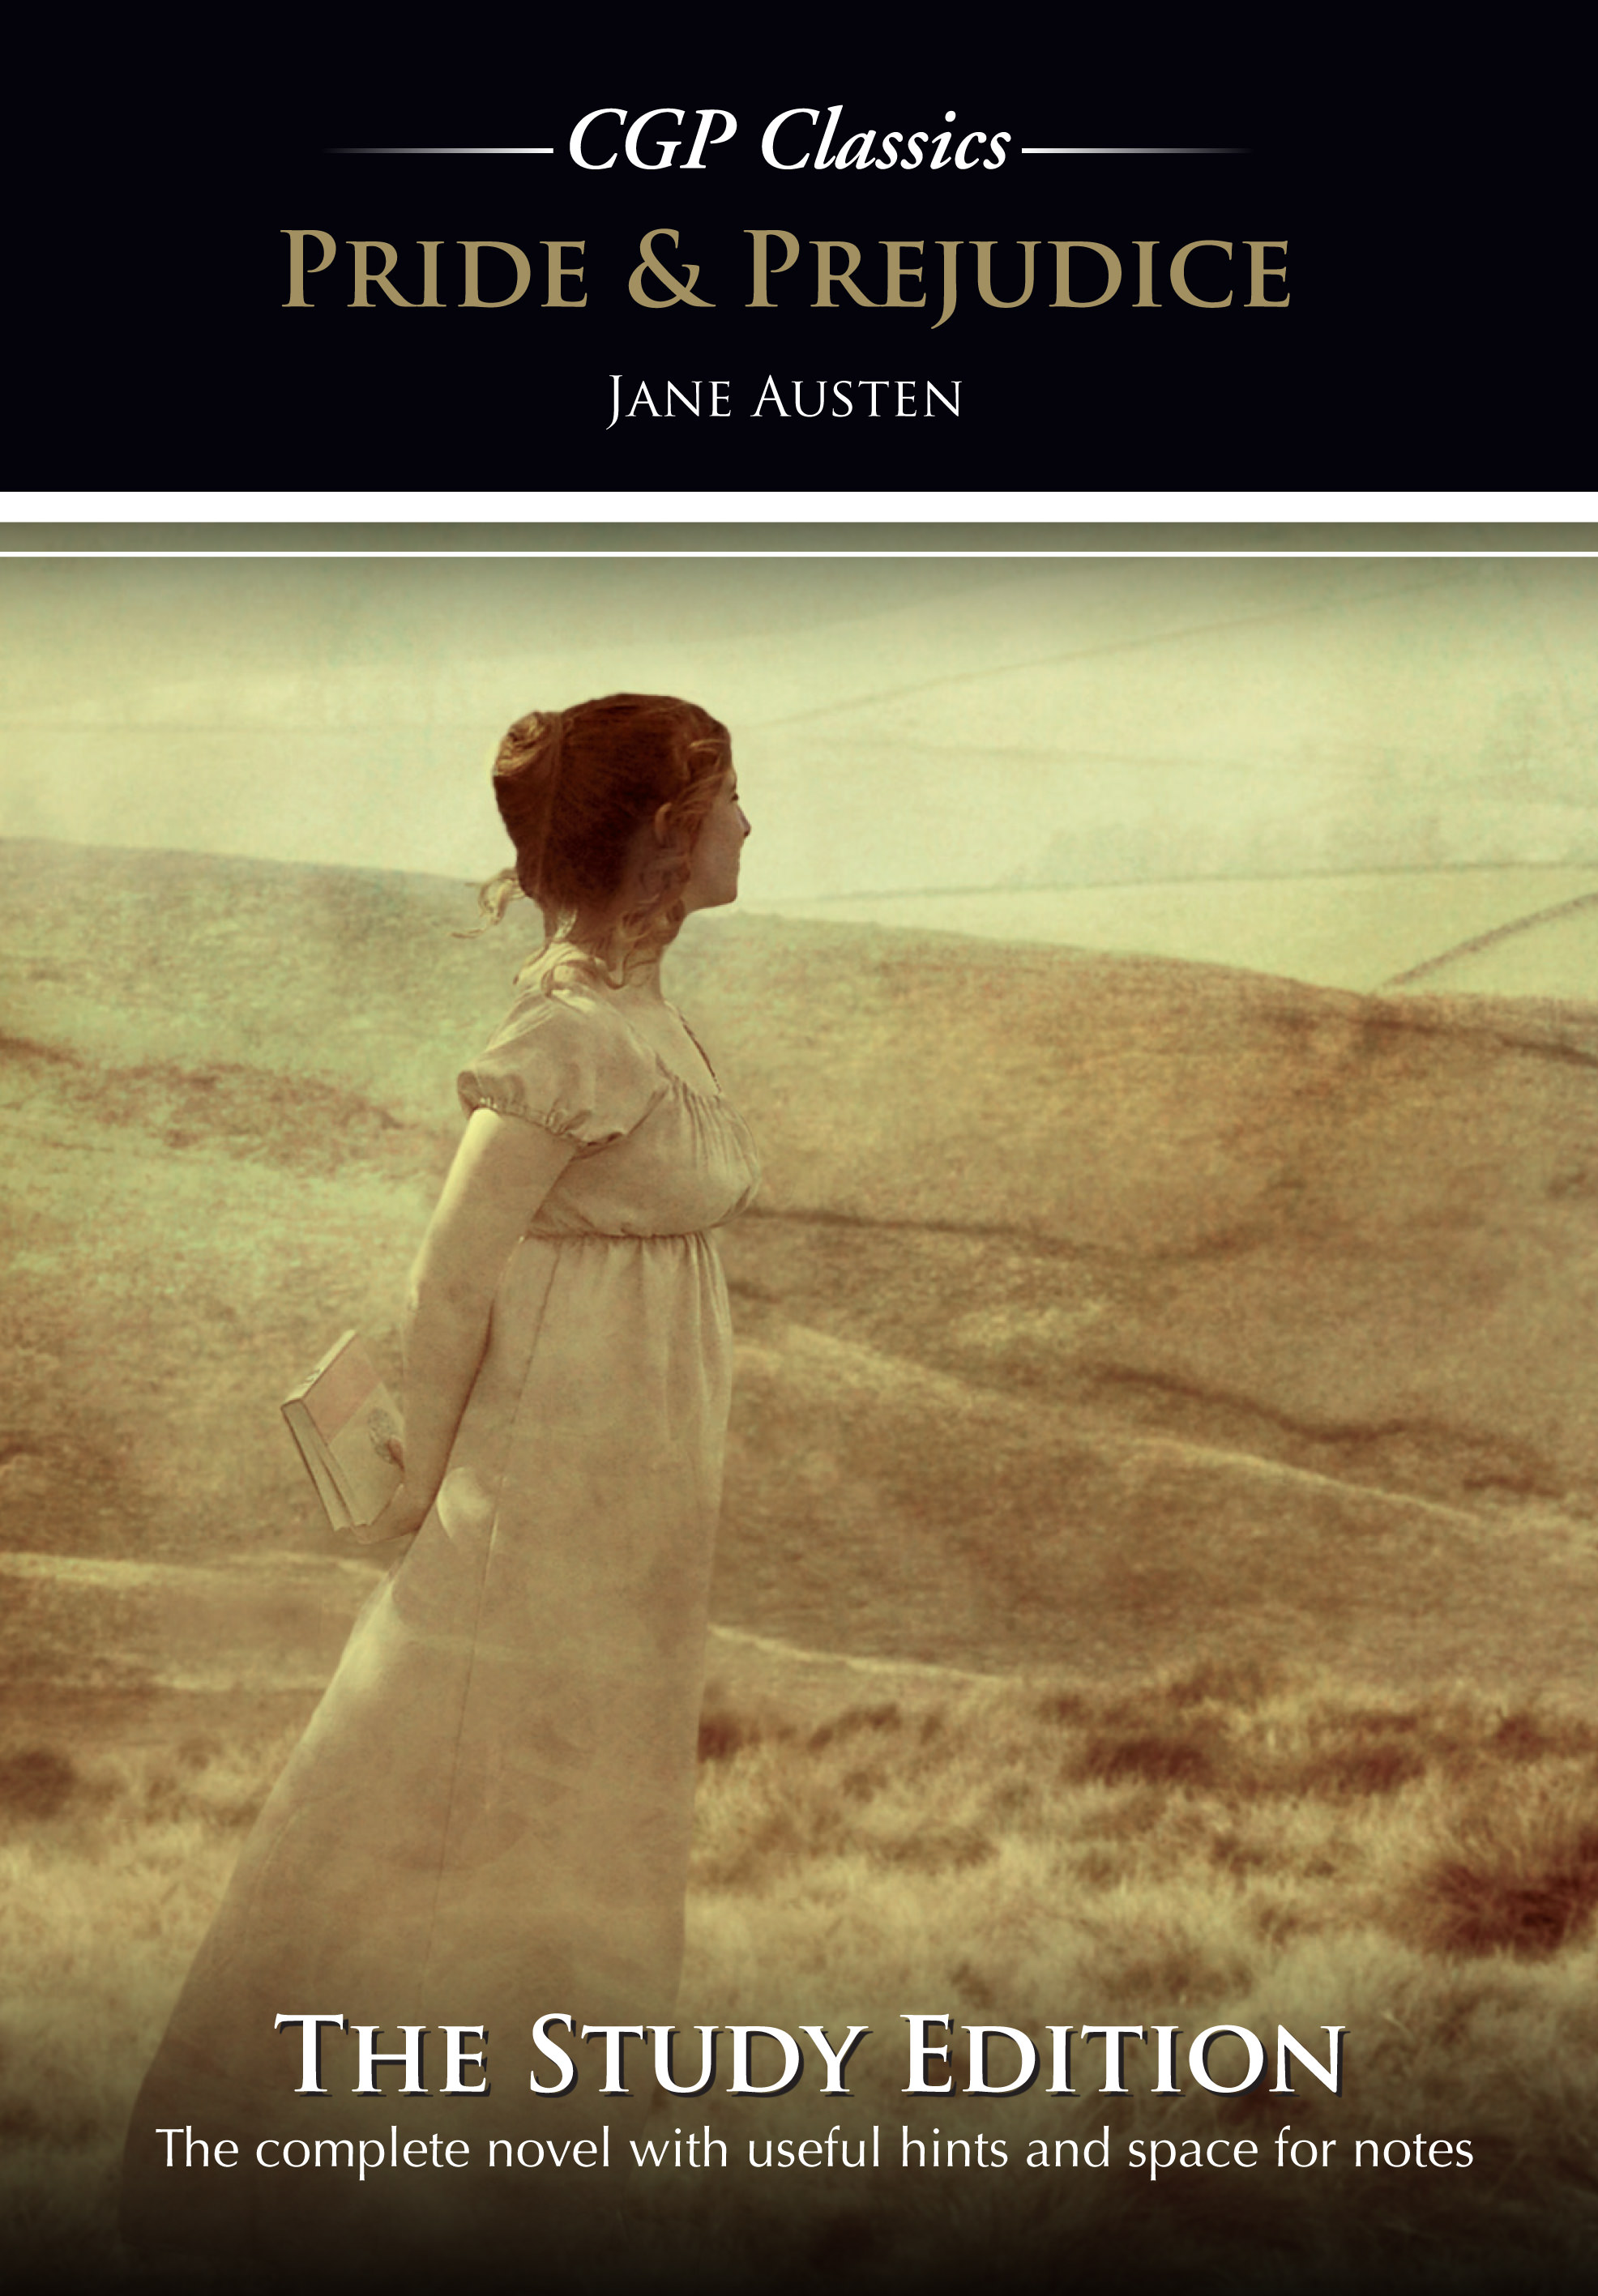 ENP41DK - Pride and Prejudice by Jane Austen Study Edition